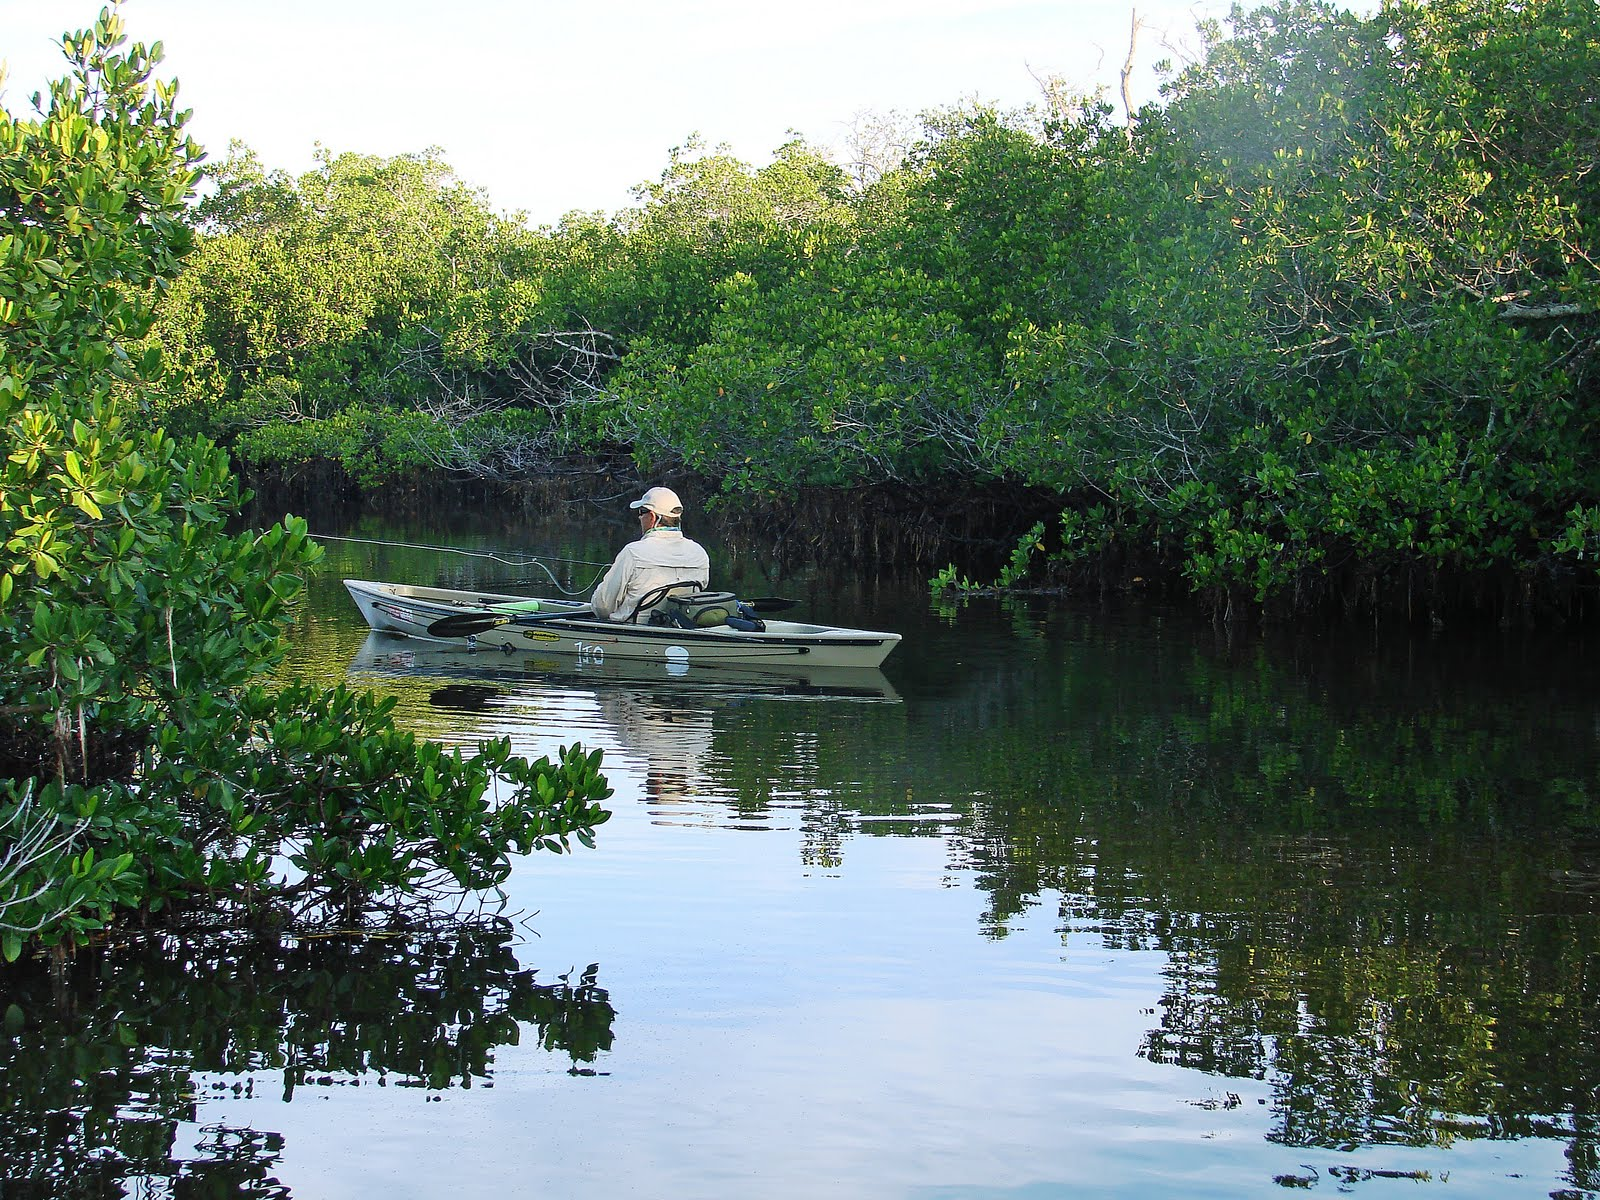 Southern kayak kronicles another day another fly rod slam for Tides 4 fishing sarasota